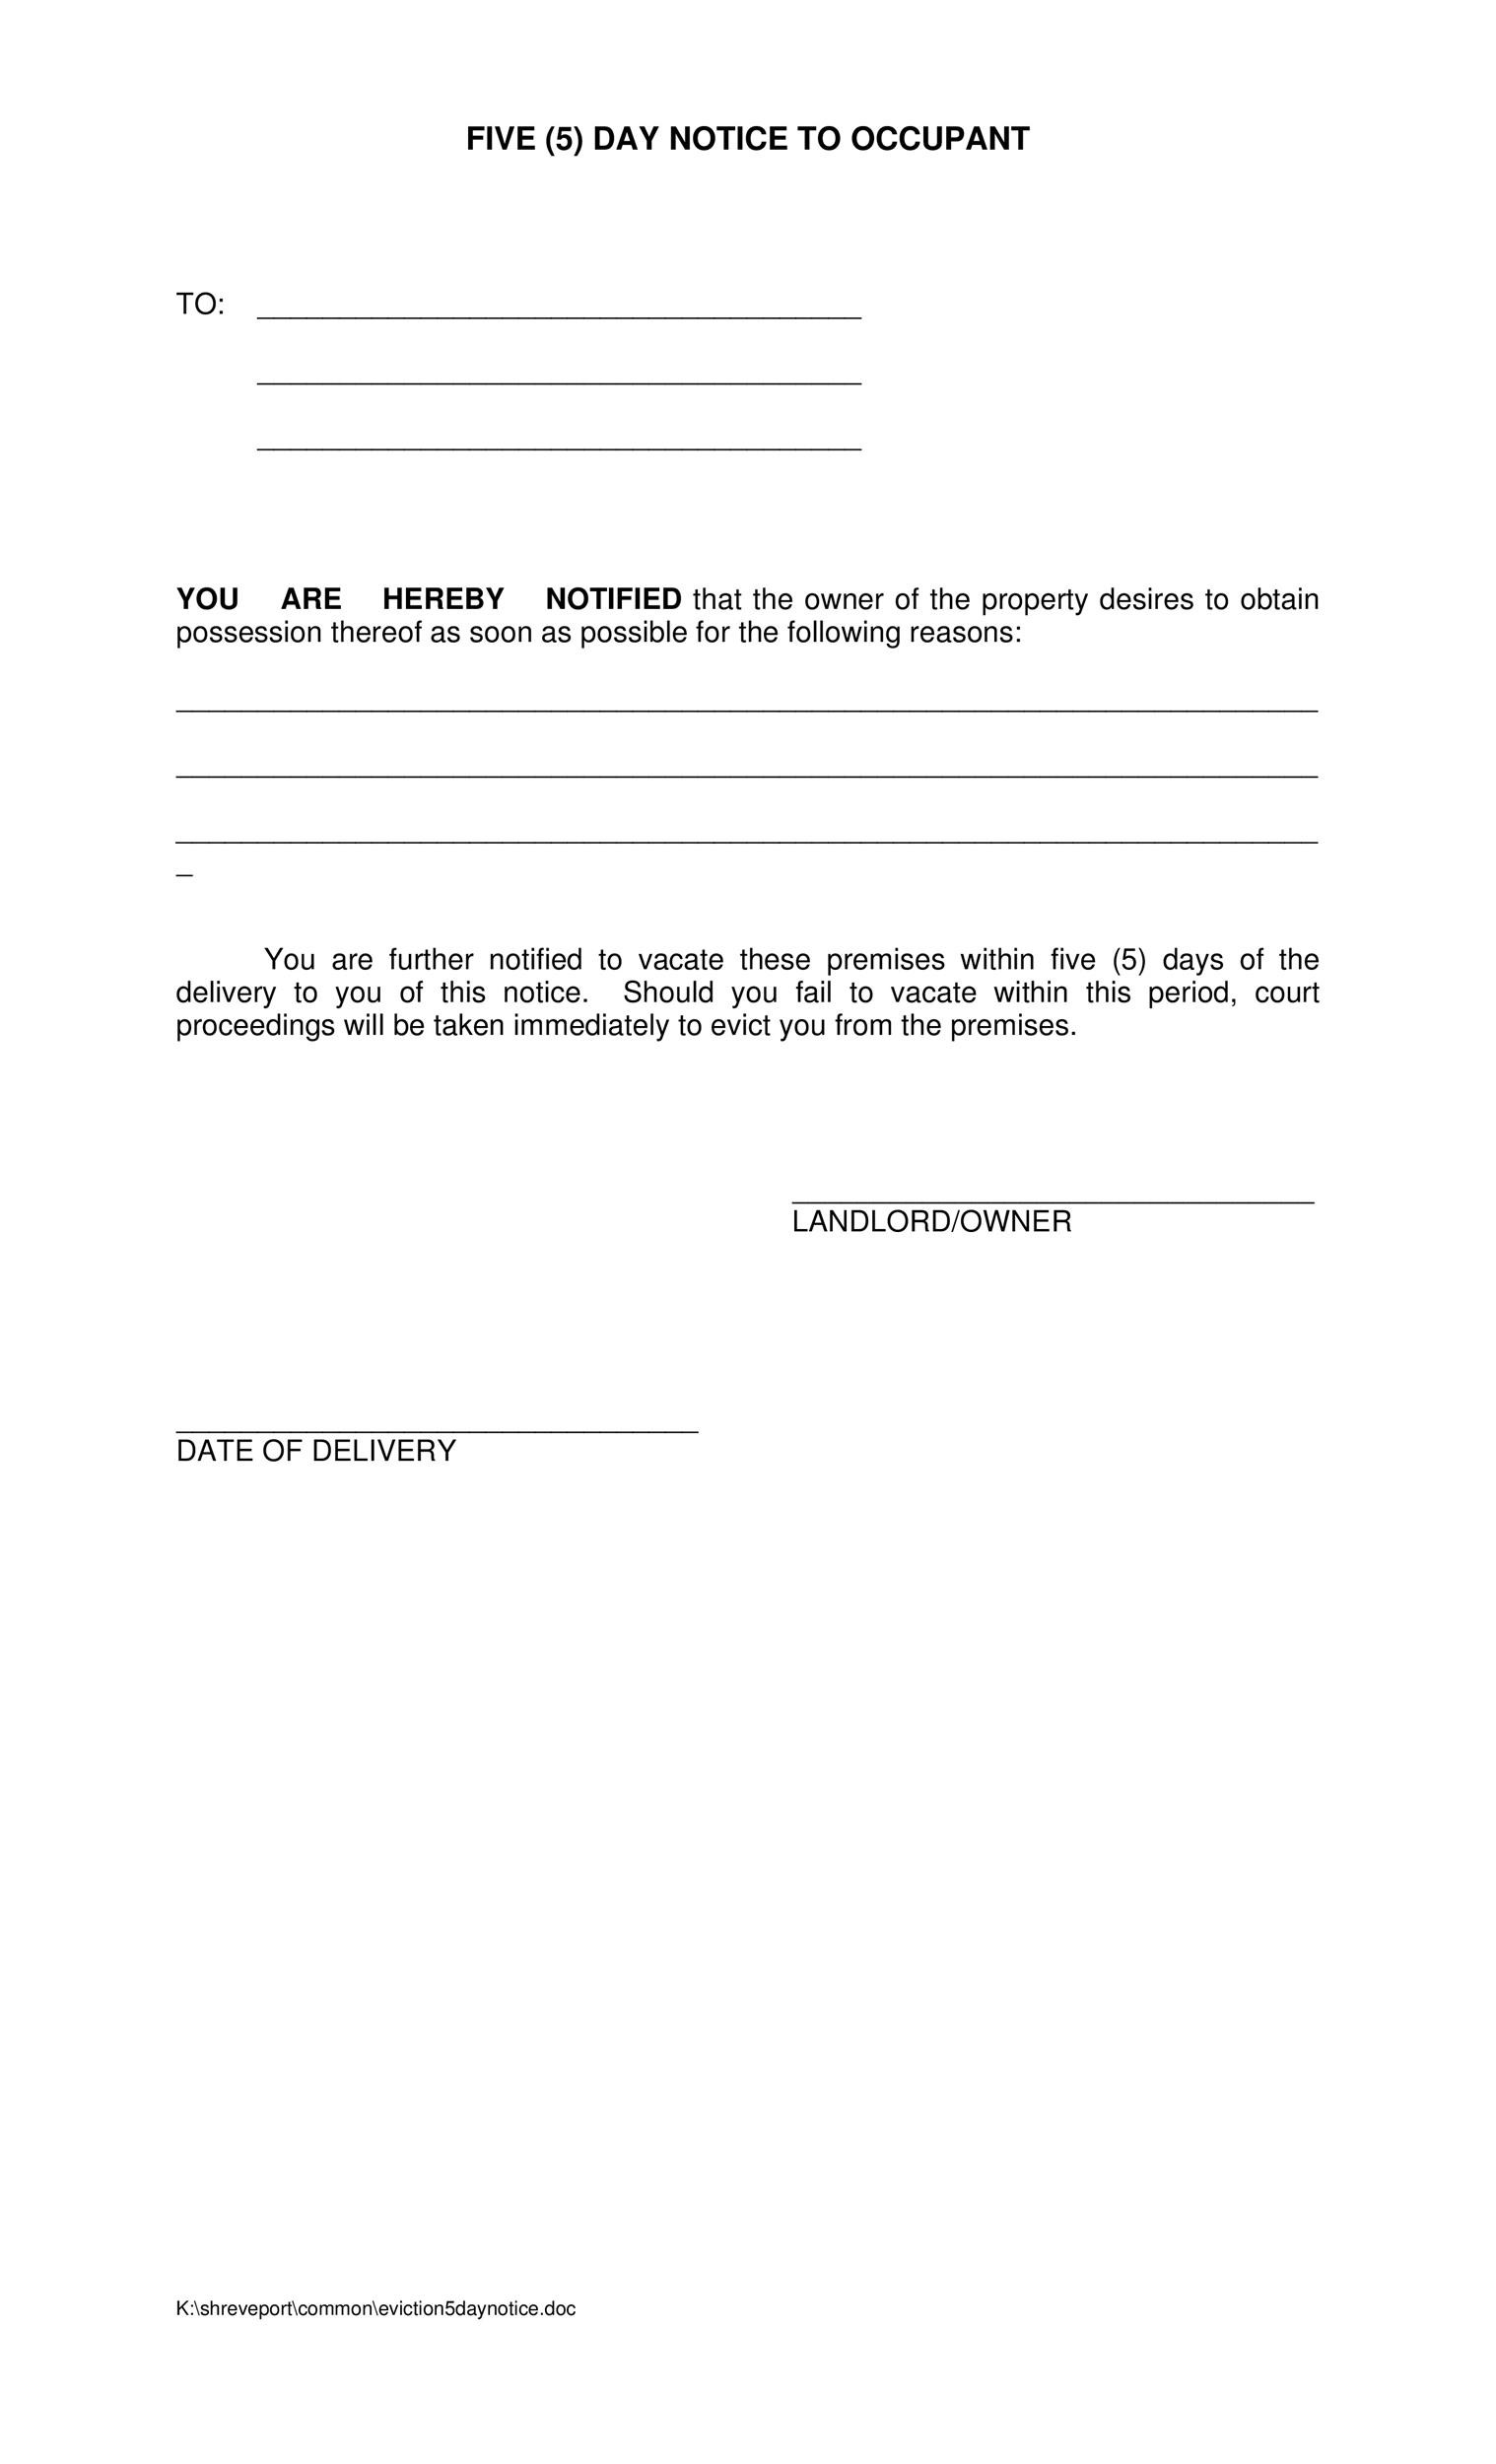 Printable Five Day Notice To Occupant Inside How To Make A Eviction Notice